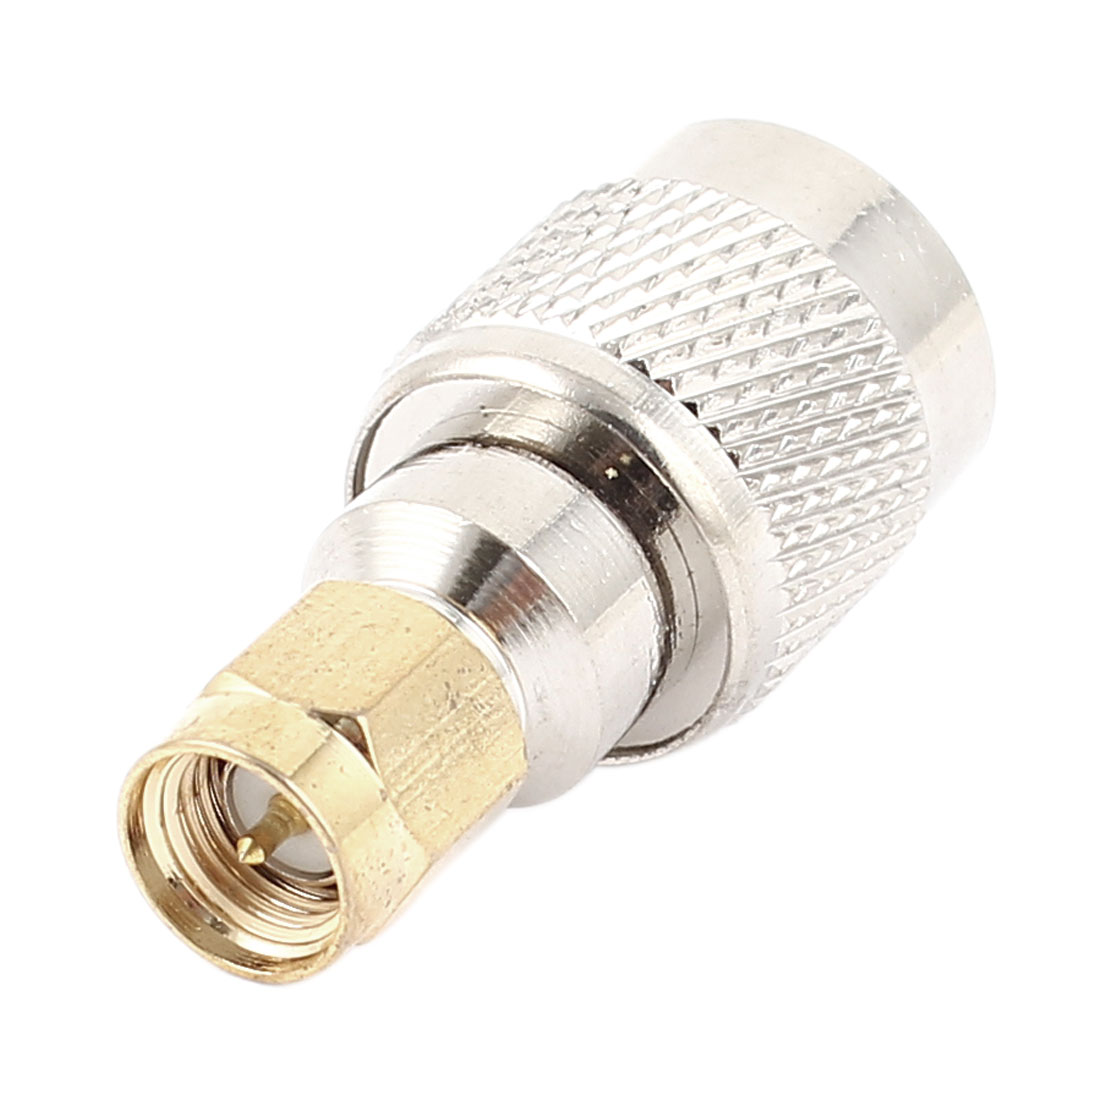 TNC Male Plug to SMA Male Plug M/M Straight Adapter RF Coaxial Cable Connector